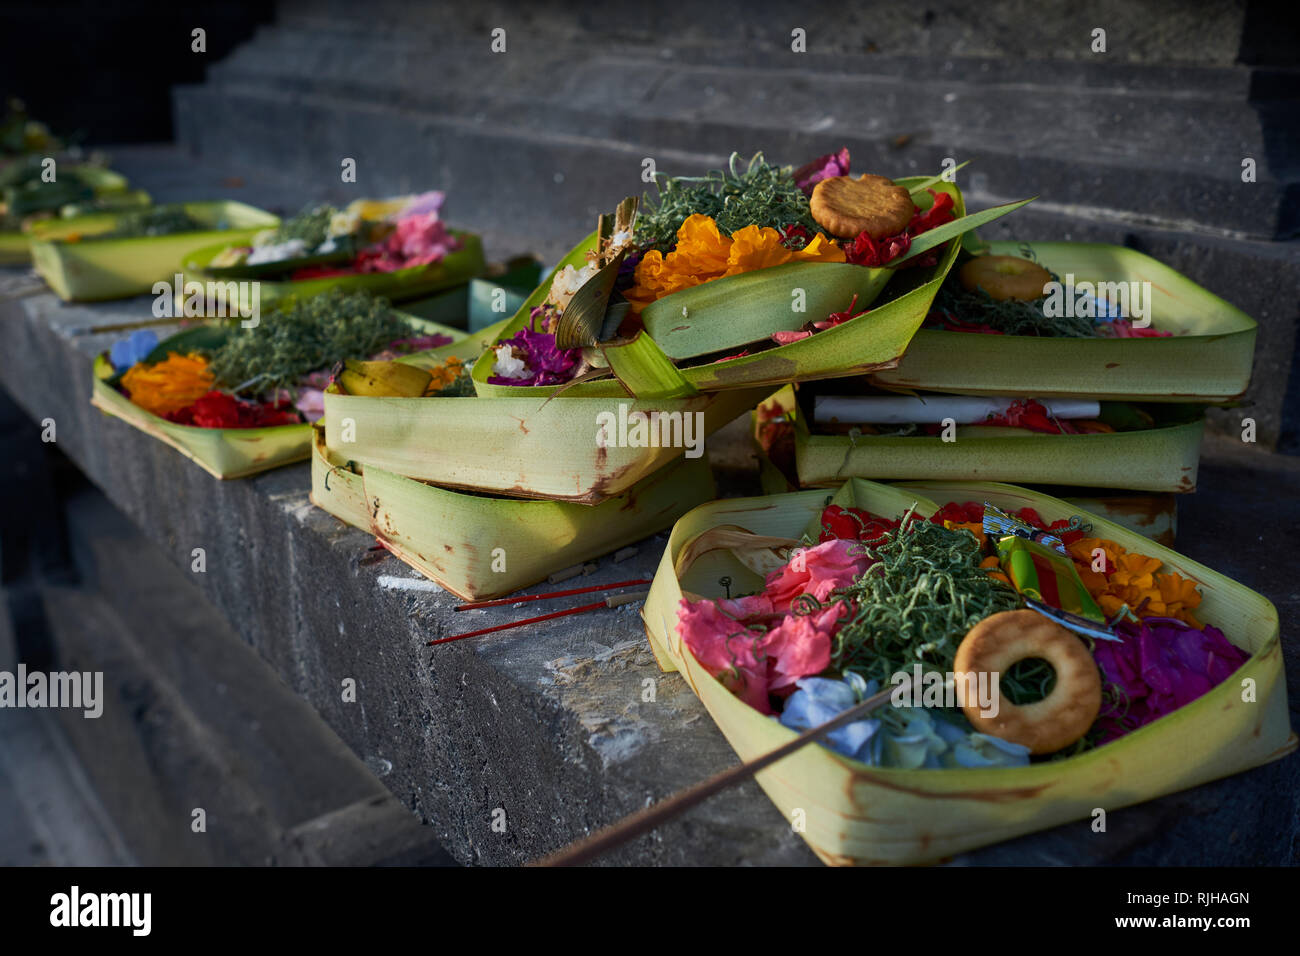 Stock Cuisine Saint Priest Religious Offerings At A Temple In Seminyak Bali Indonesia Stock